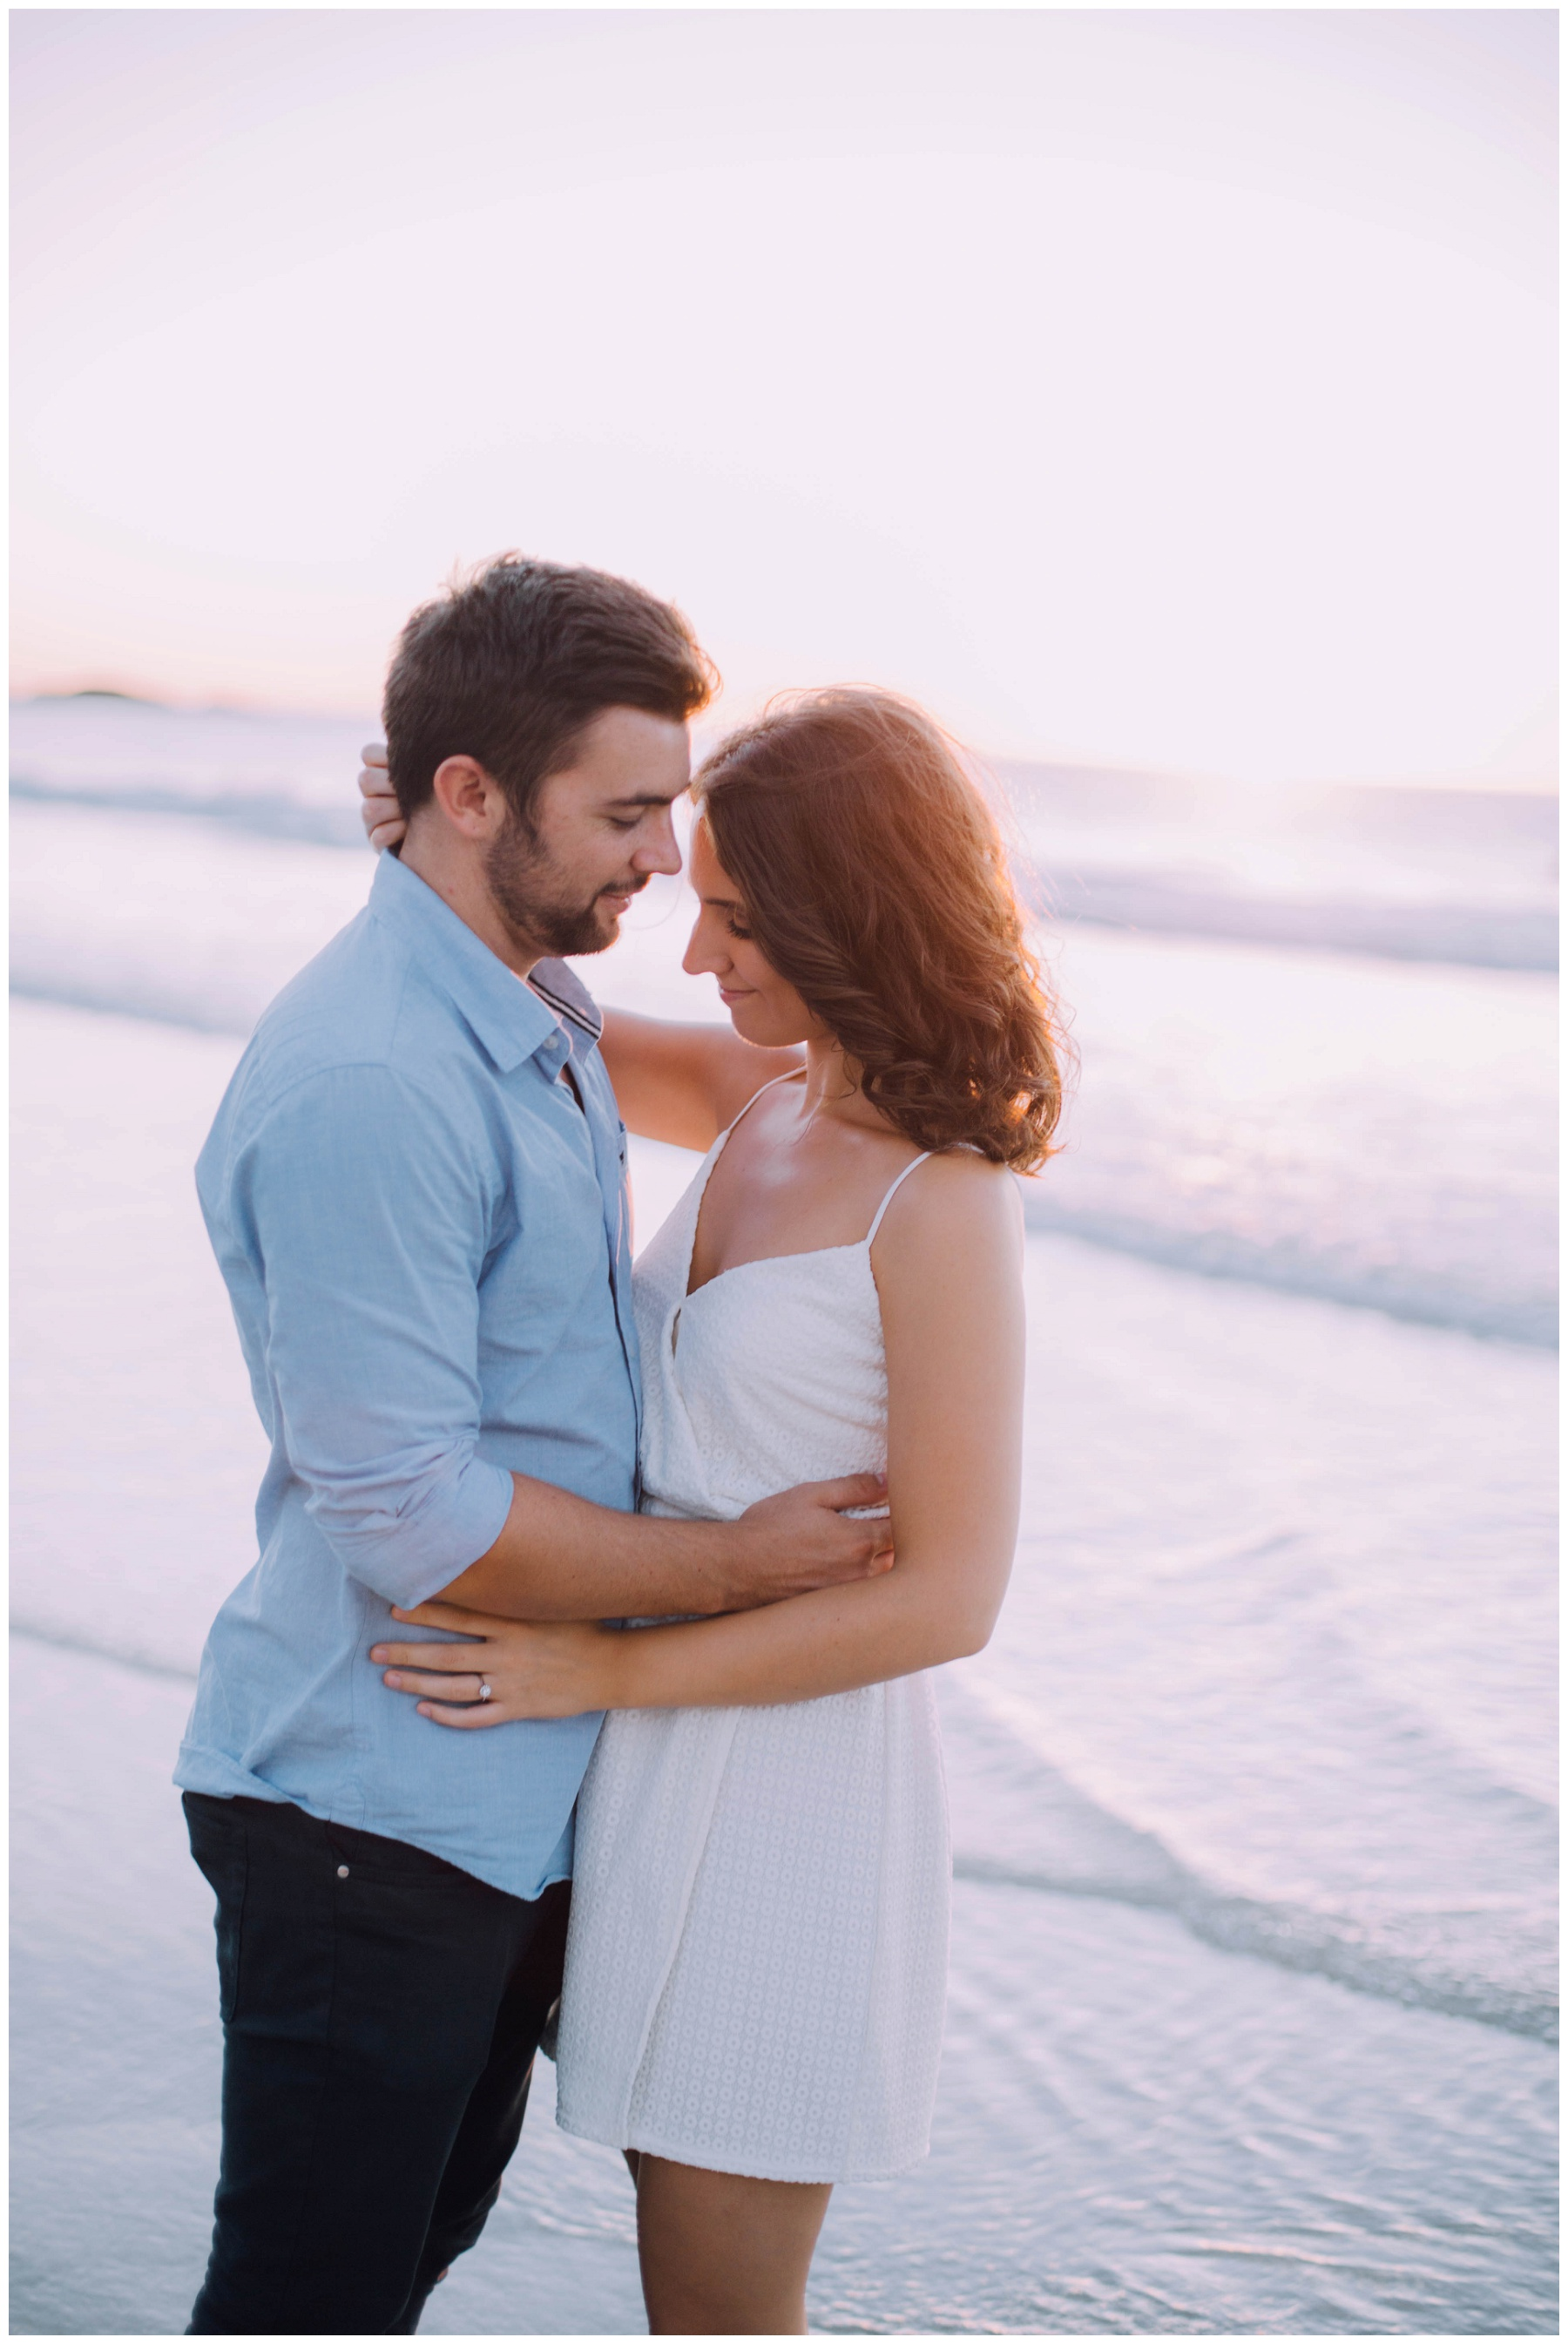 Ronel Kruger Cape Town Wedding and Lifestyle Photographer_8480.jpg